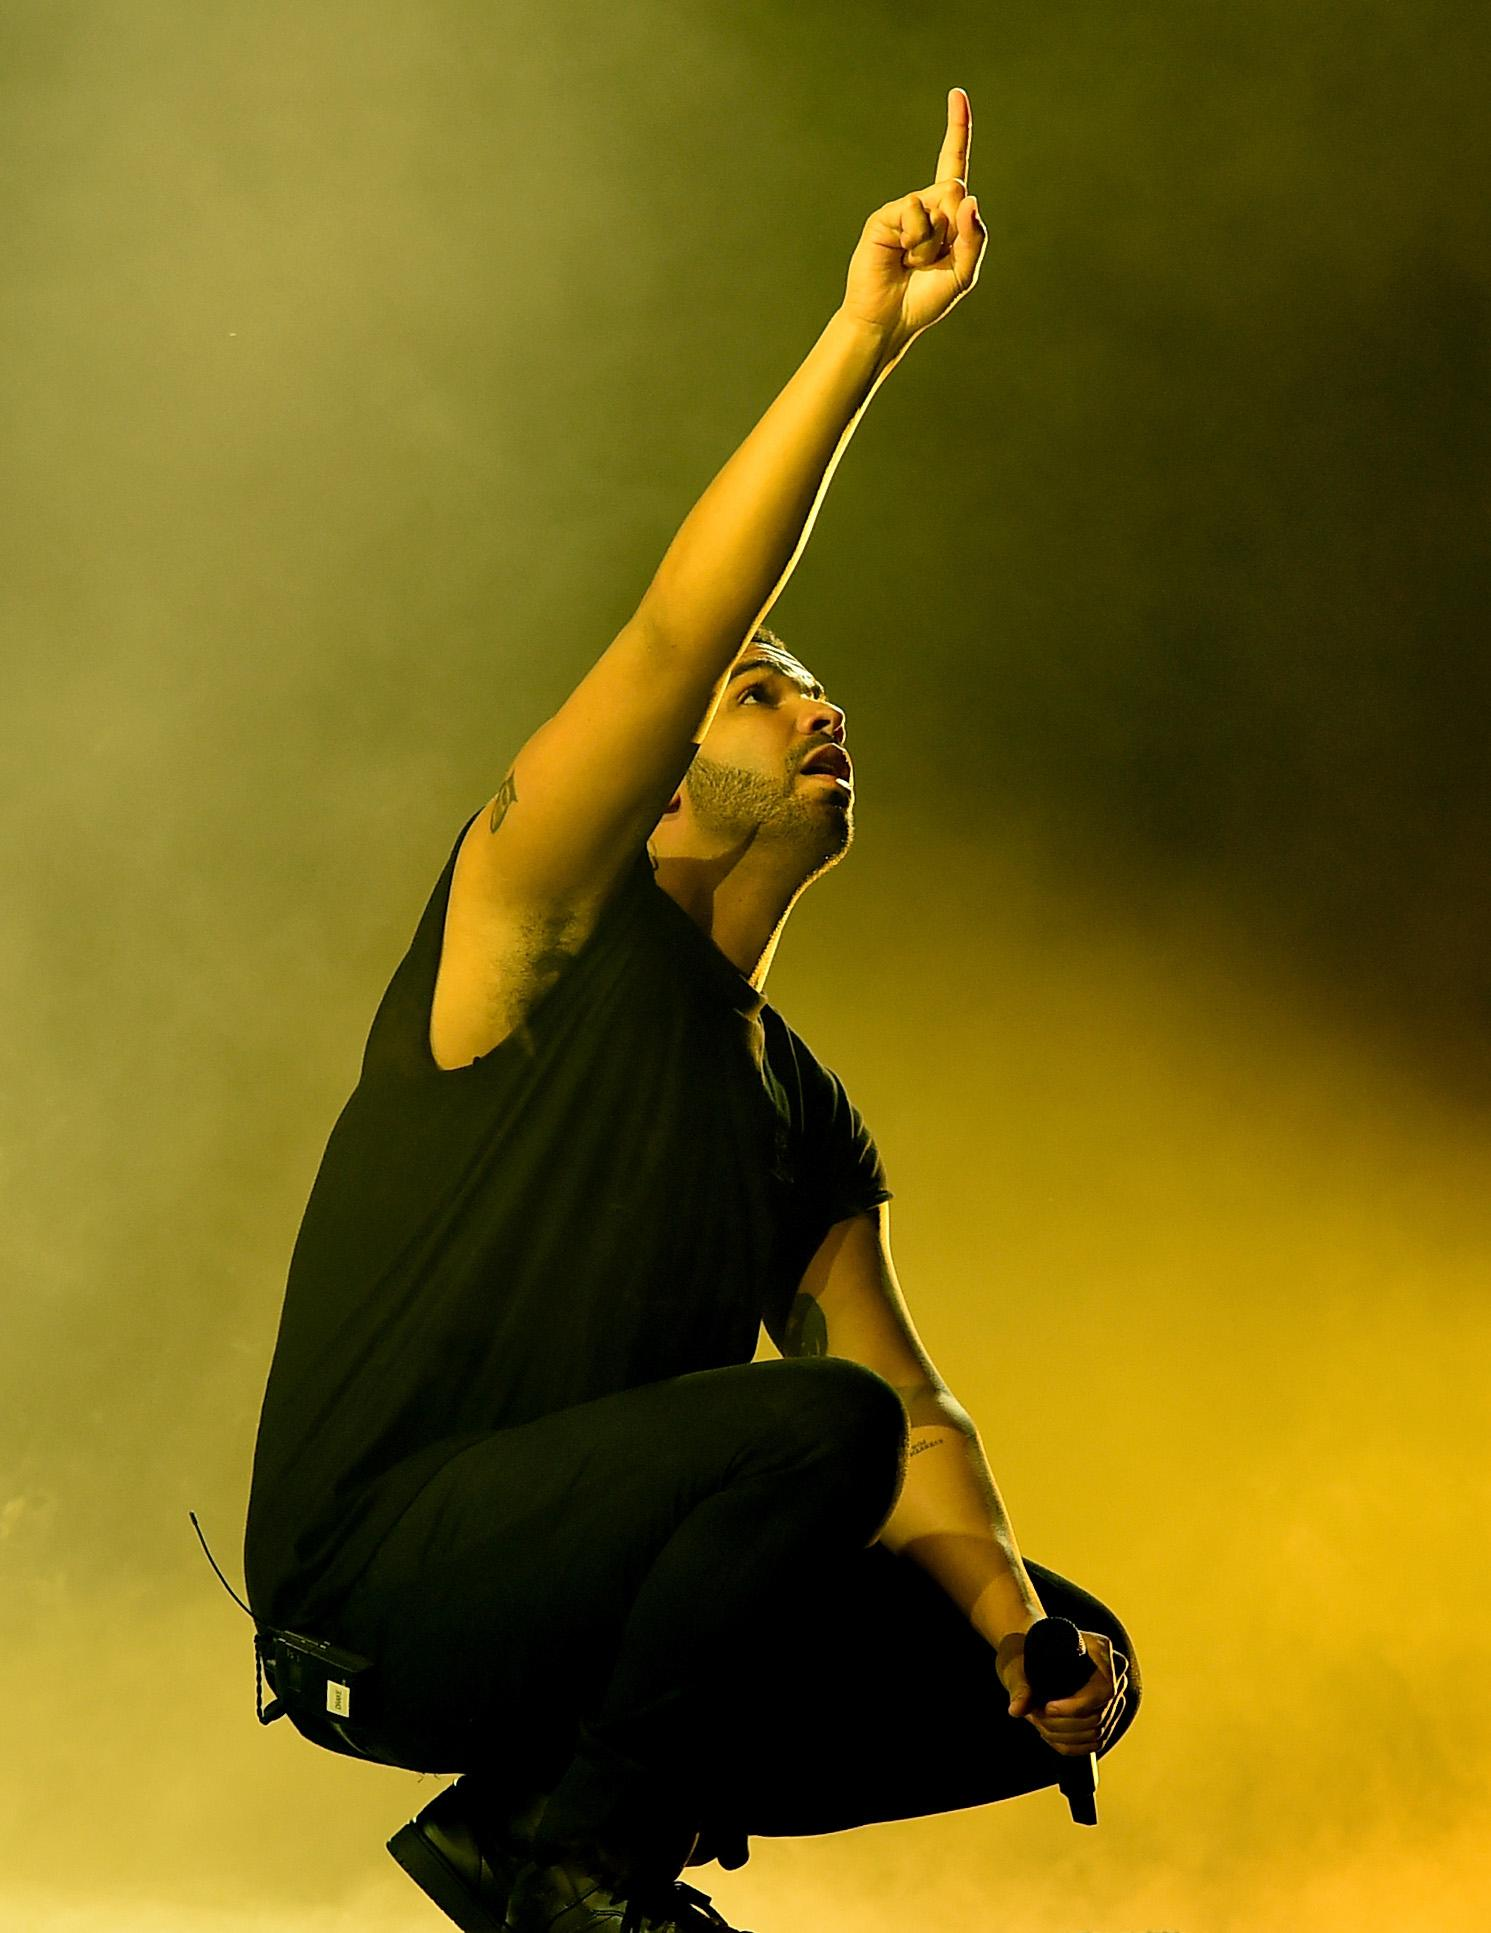 Drake Blasts Meek Mill in Live Performance